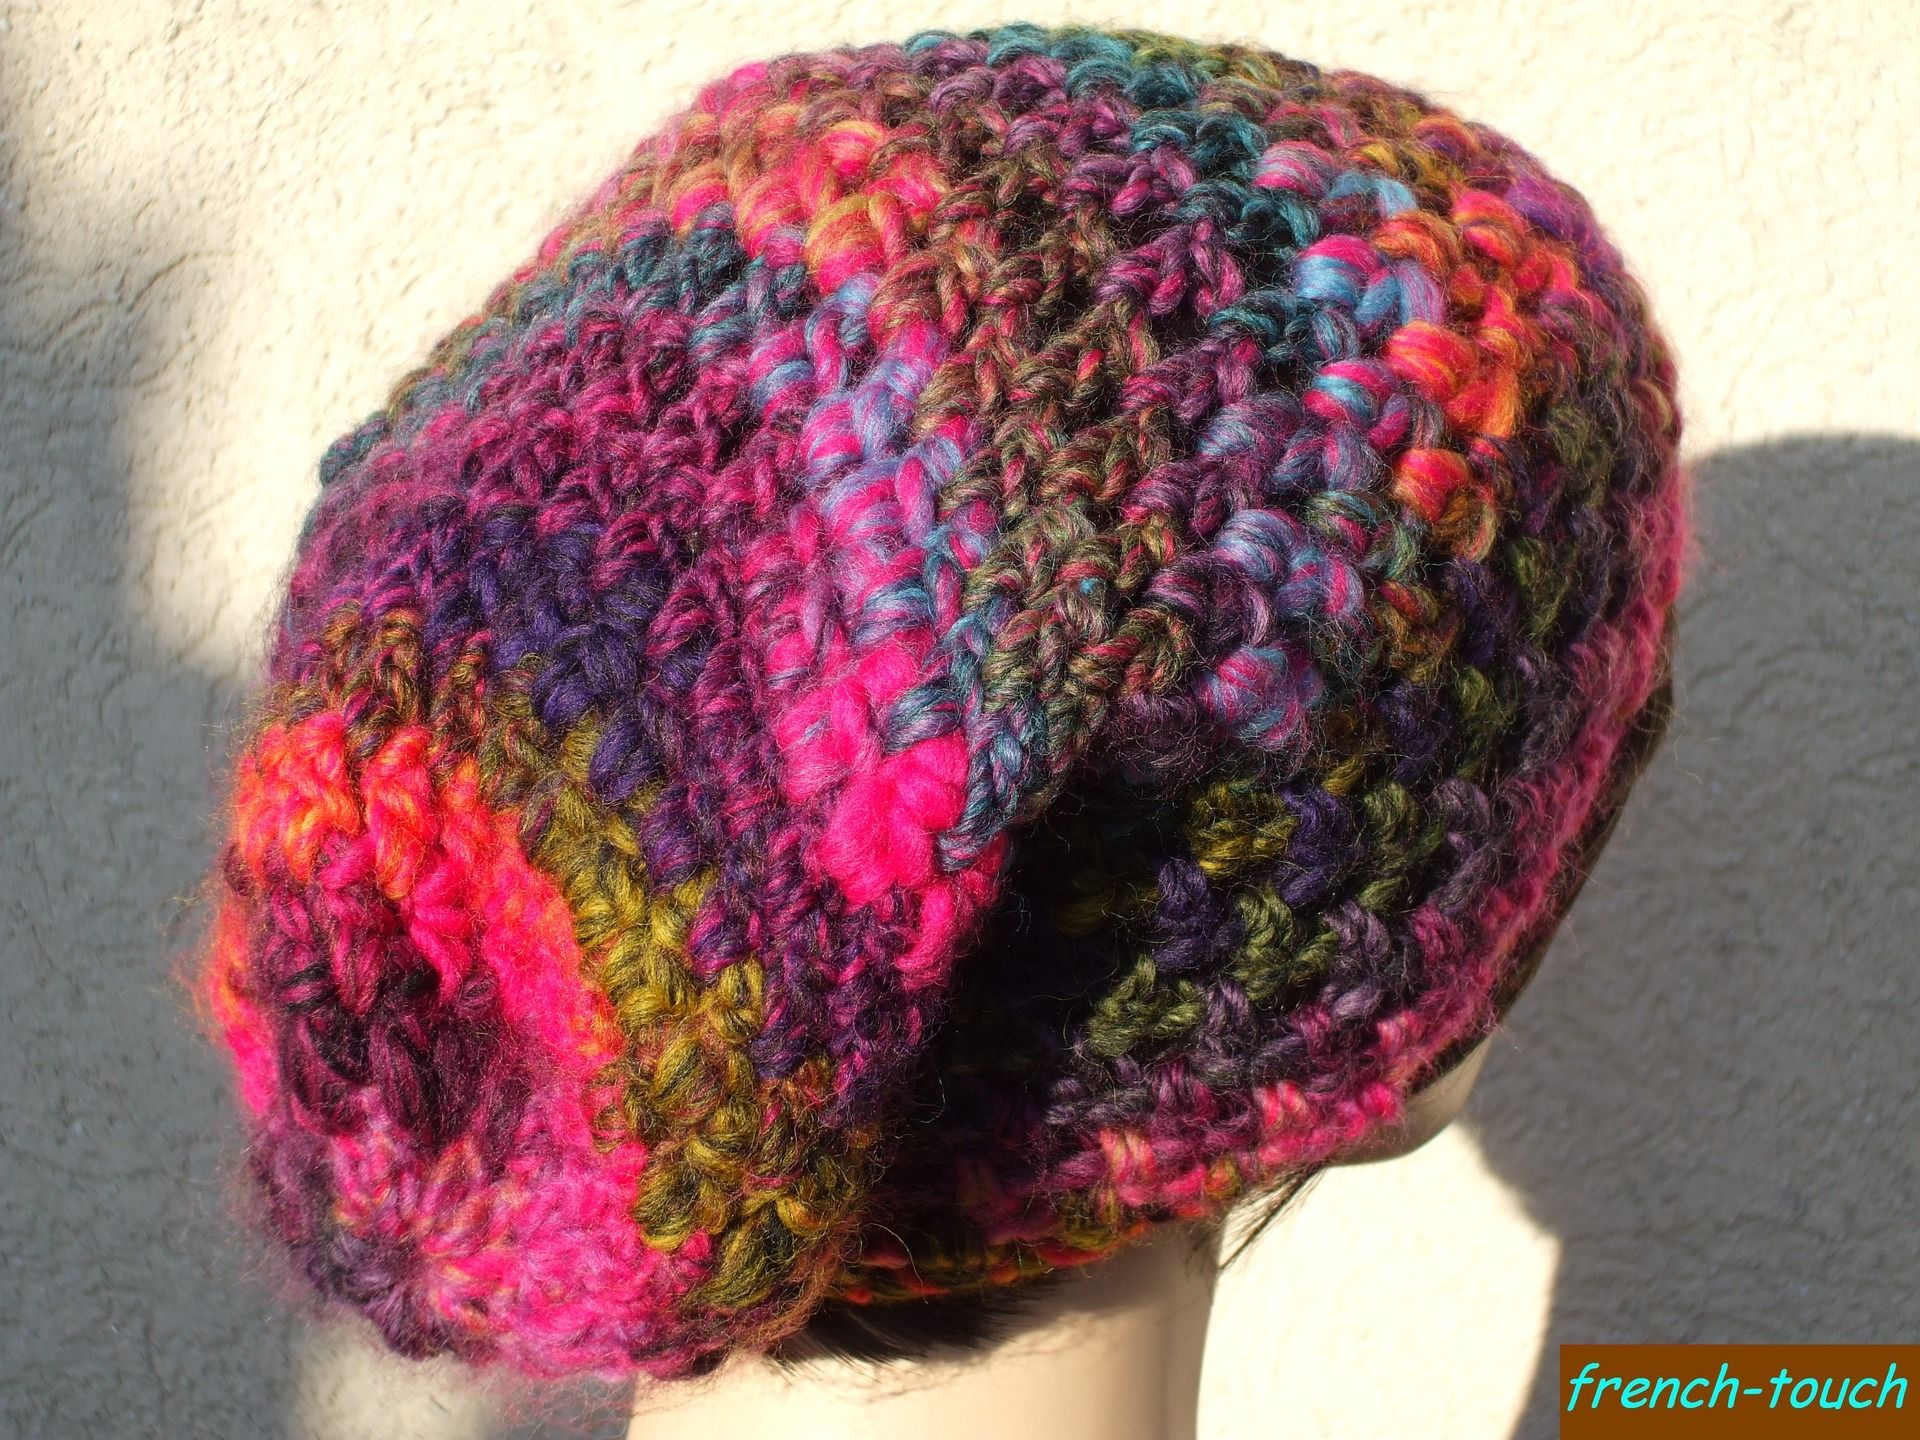 bonnet slouch en laine multicolore fait main au crochet bonnet slouchy accessoire de mode hiver. Black Bedroom Furniture Sets. Home Design Ideas